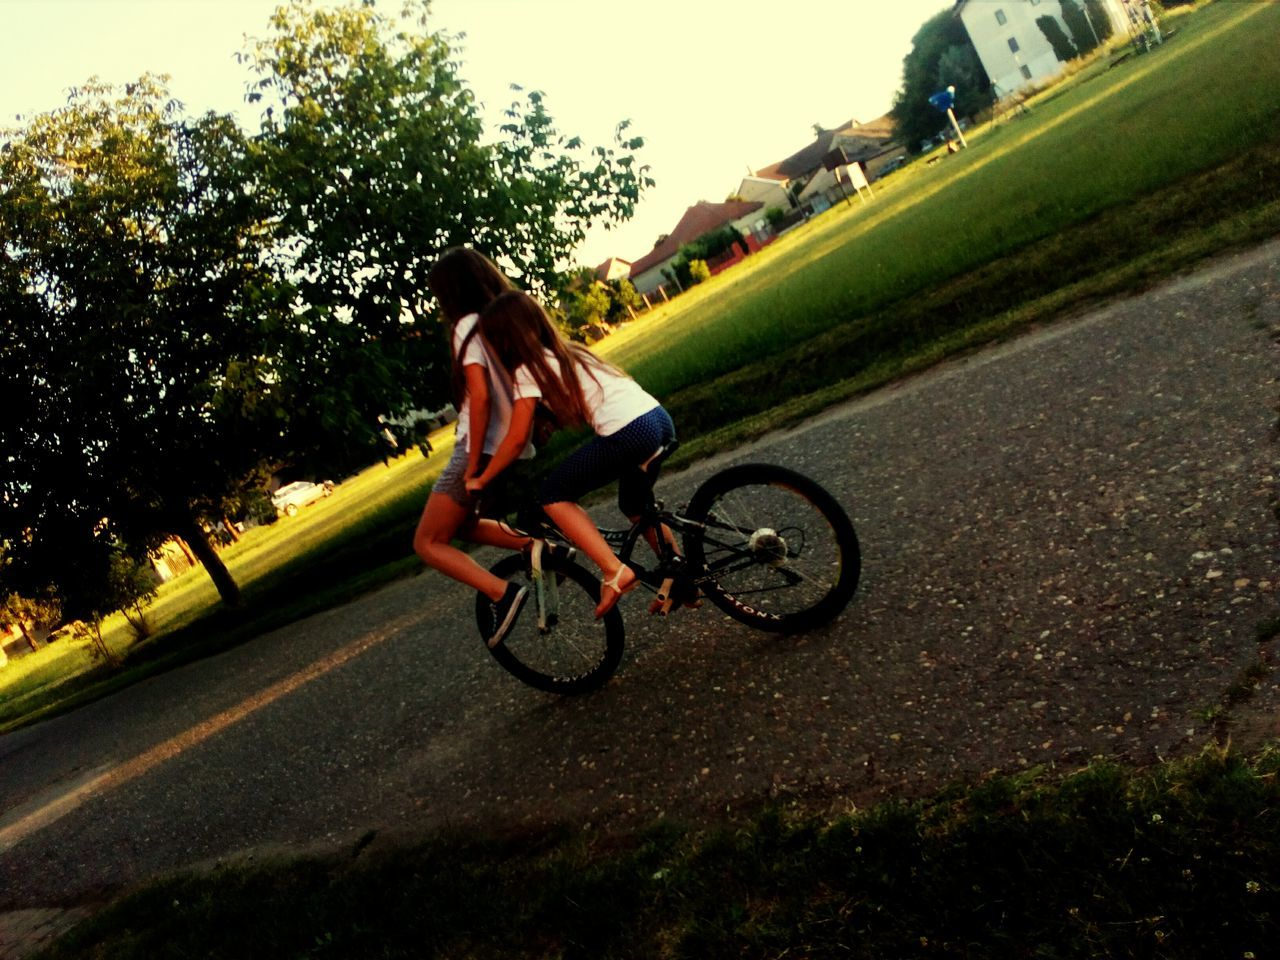 bicycle, riding, transportation, real people, cycling, one person, mode of transport, full length, leisure activity, lifestyles, land vehicle, day, motion, outdoors, tree, road, helmet, cycling helmet, sport, mountain bike, bmx cycling, extreme sports, nature, young women, young adult, biker, sky, people